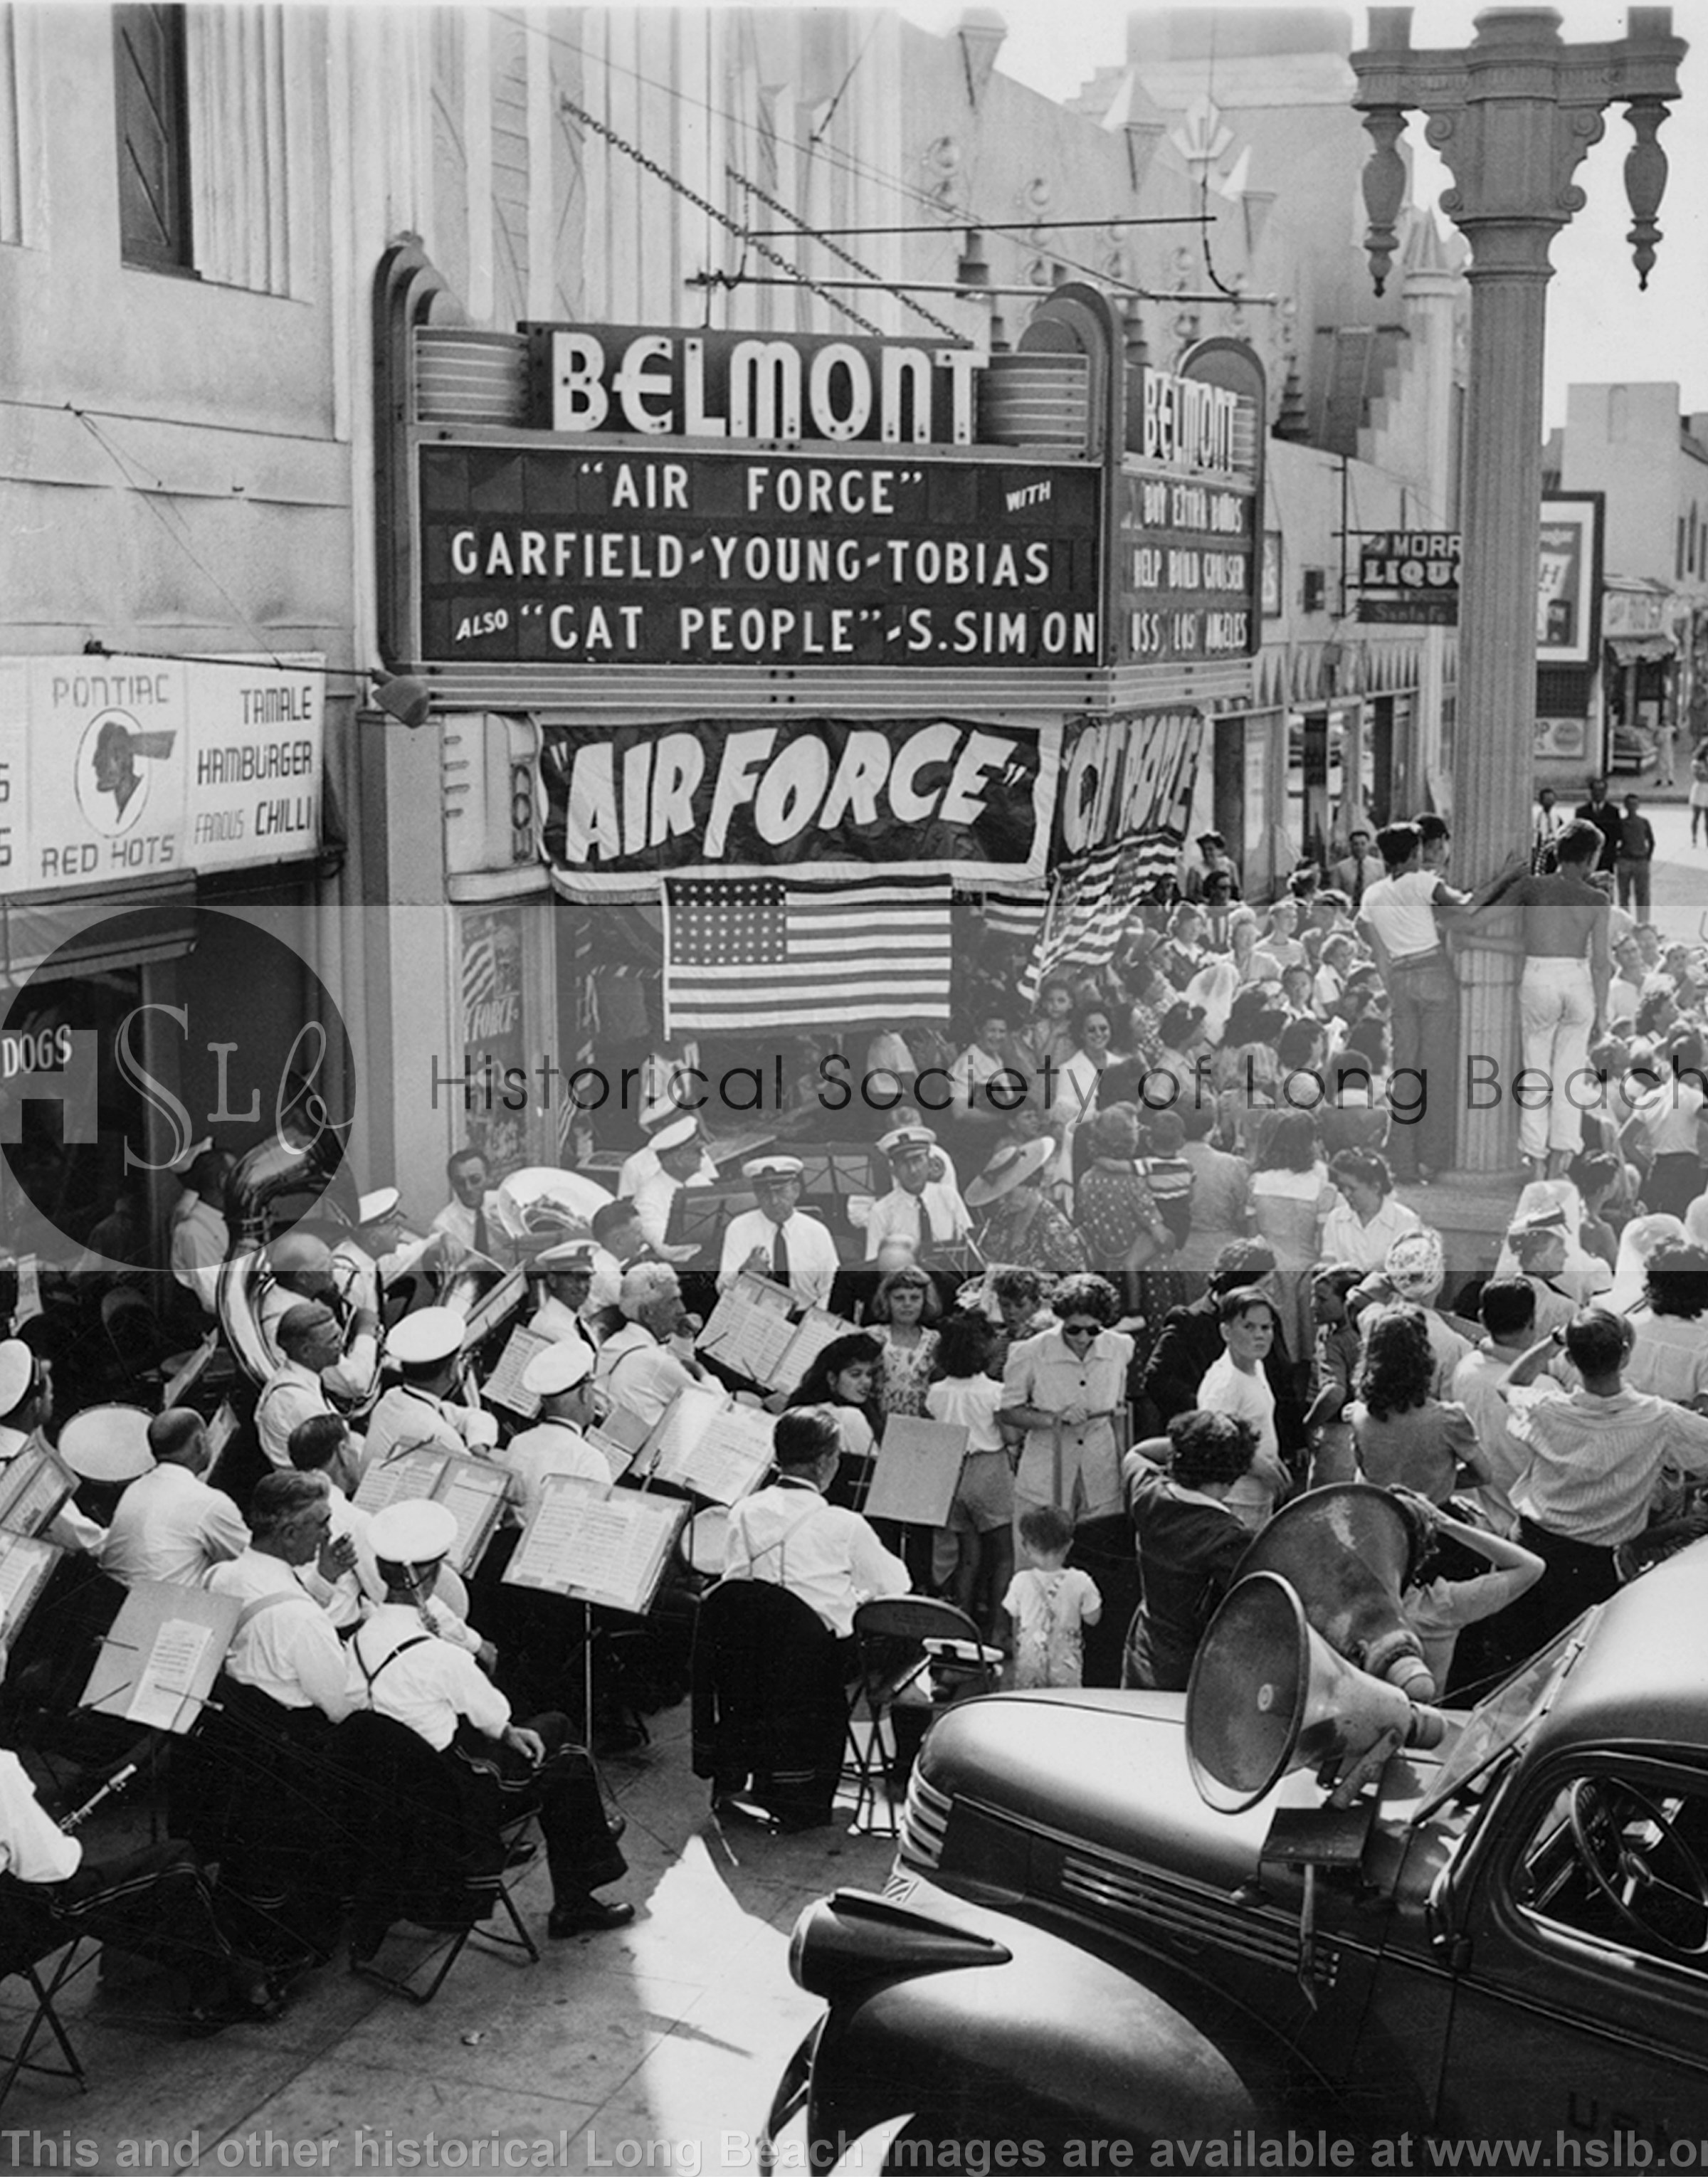 Belmont Theatre band, 1943 vintage photograph